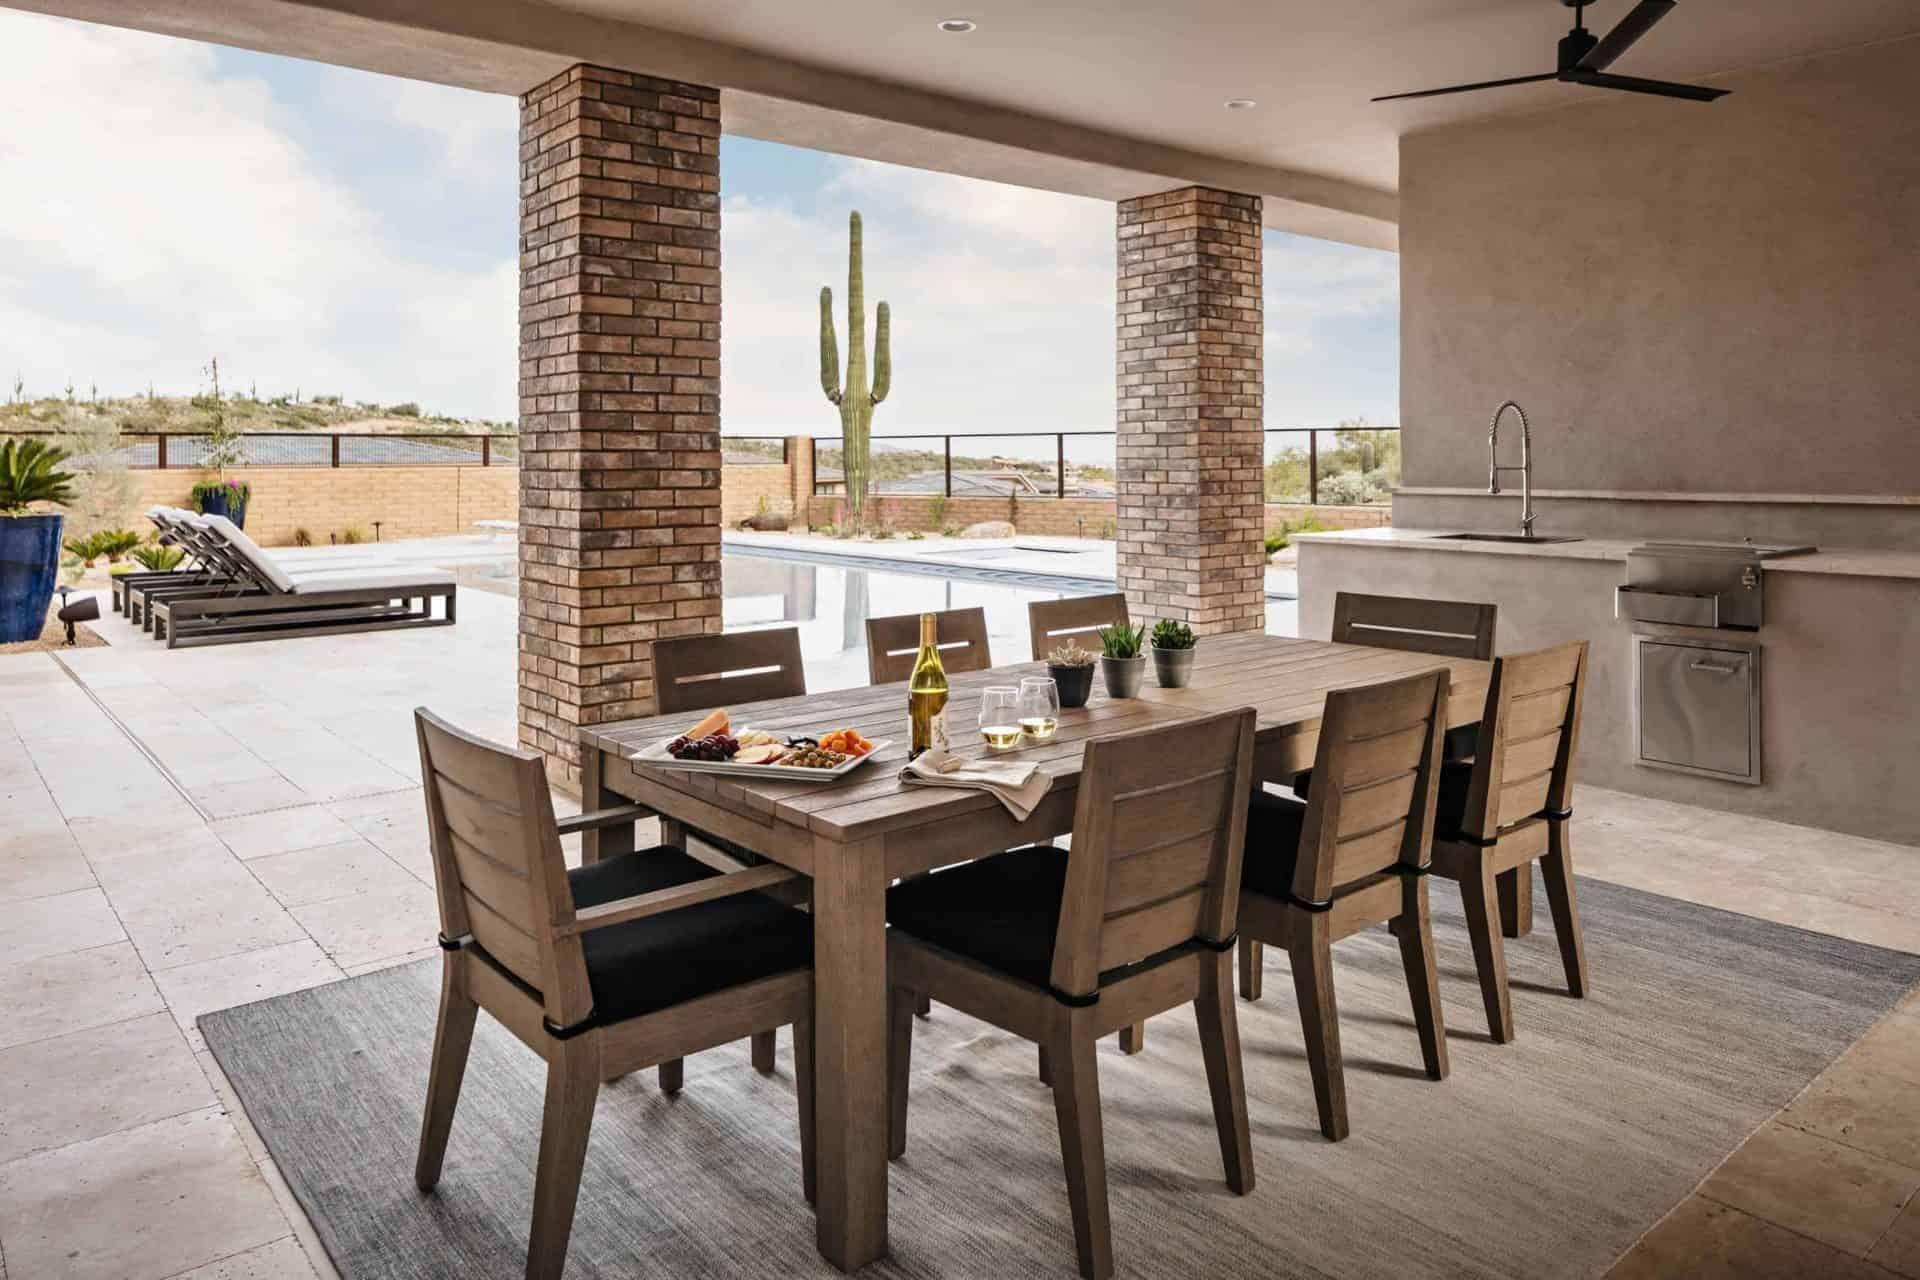 Top 32 Best Outdoor Kitchen Ideas and Designs | New ... on New Vision Outdoor Living id=30153